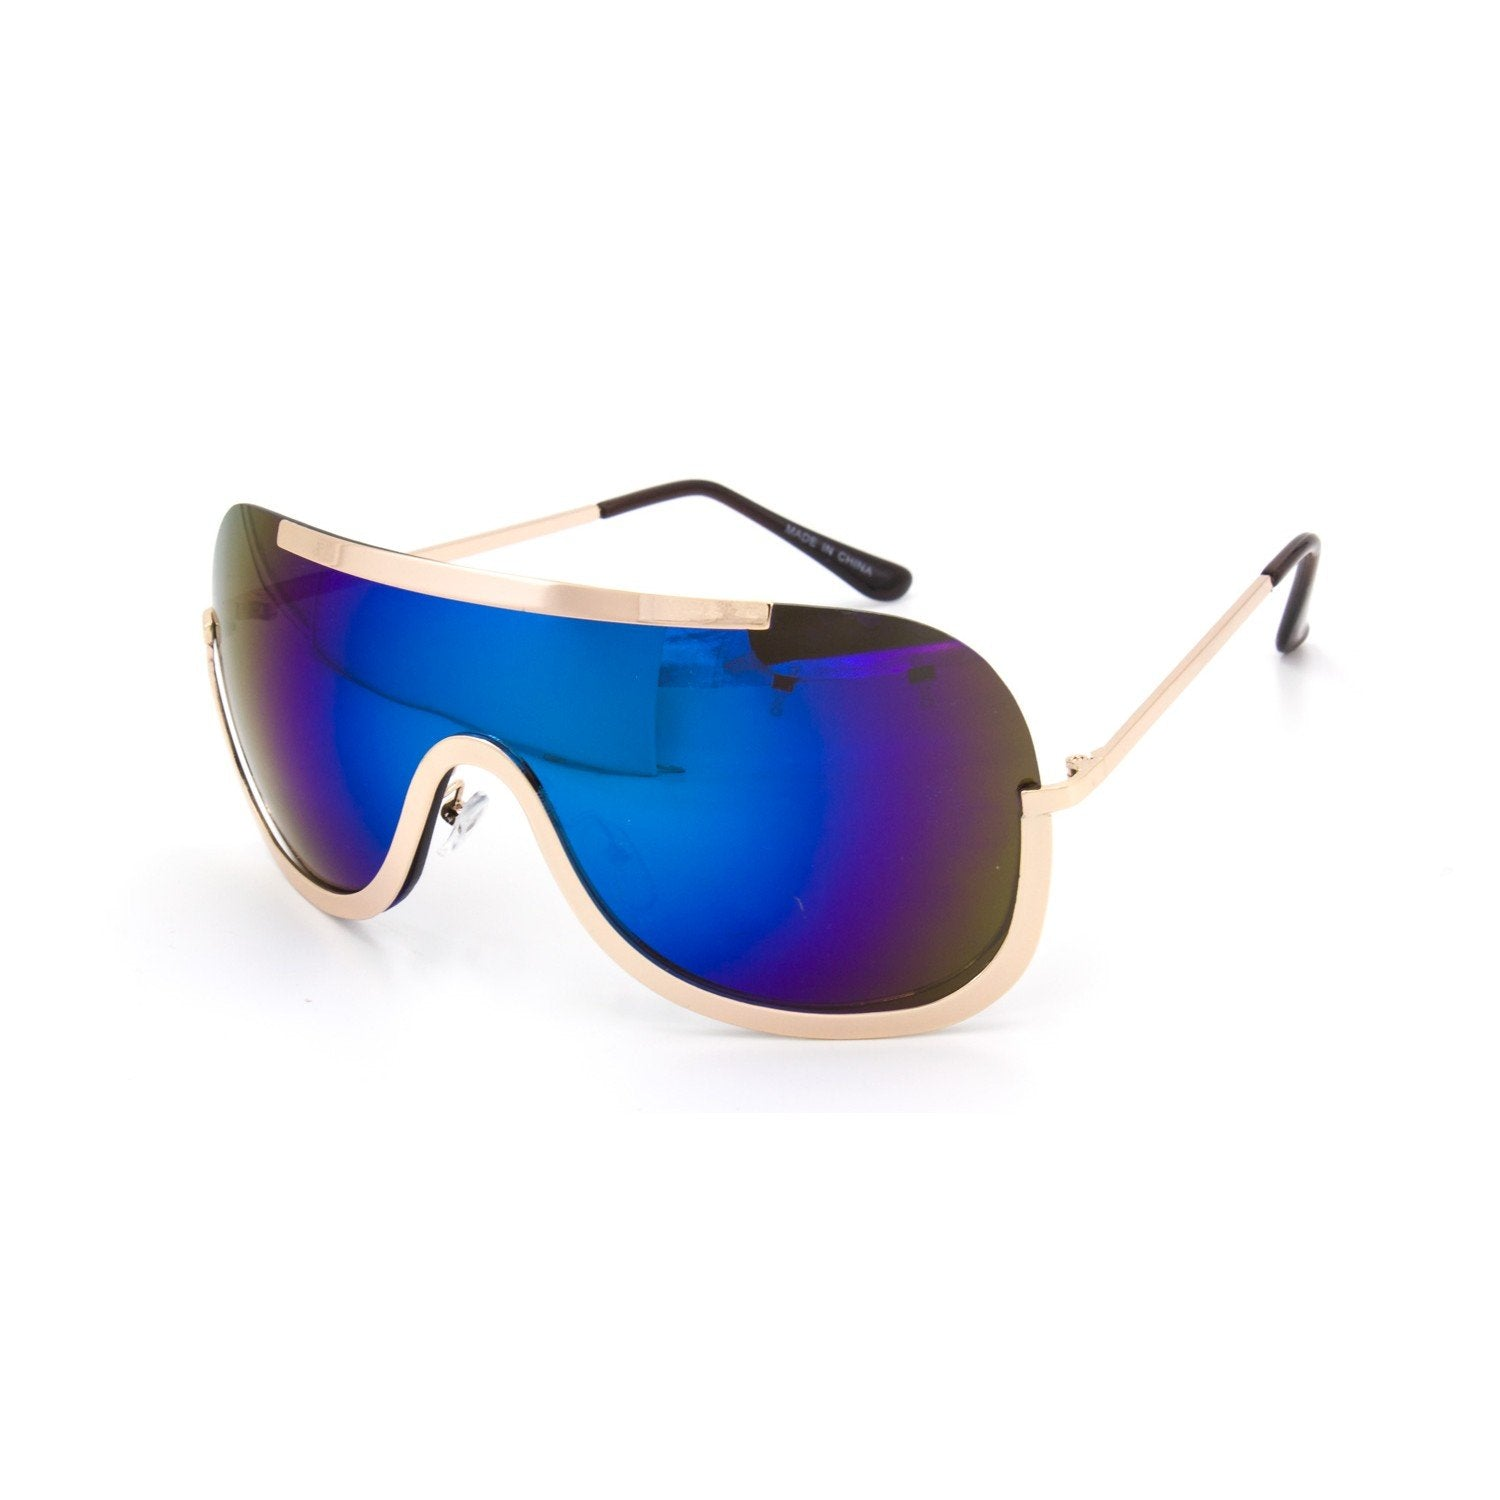 Kimmora Sunglasses - Final Sale